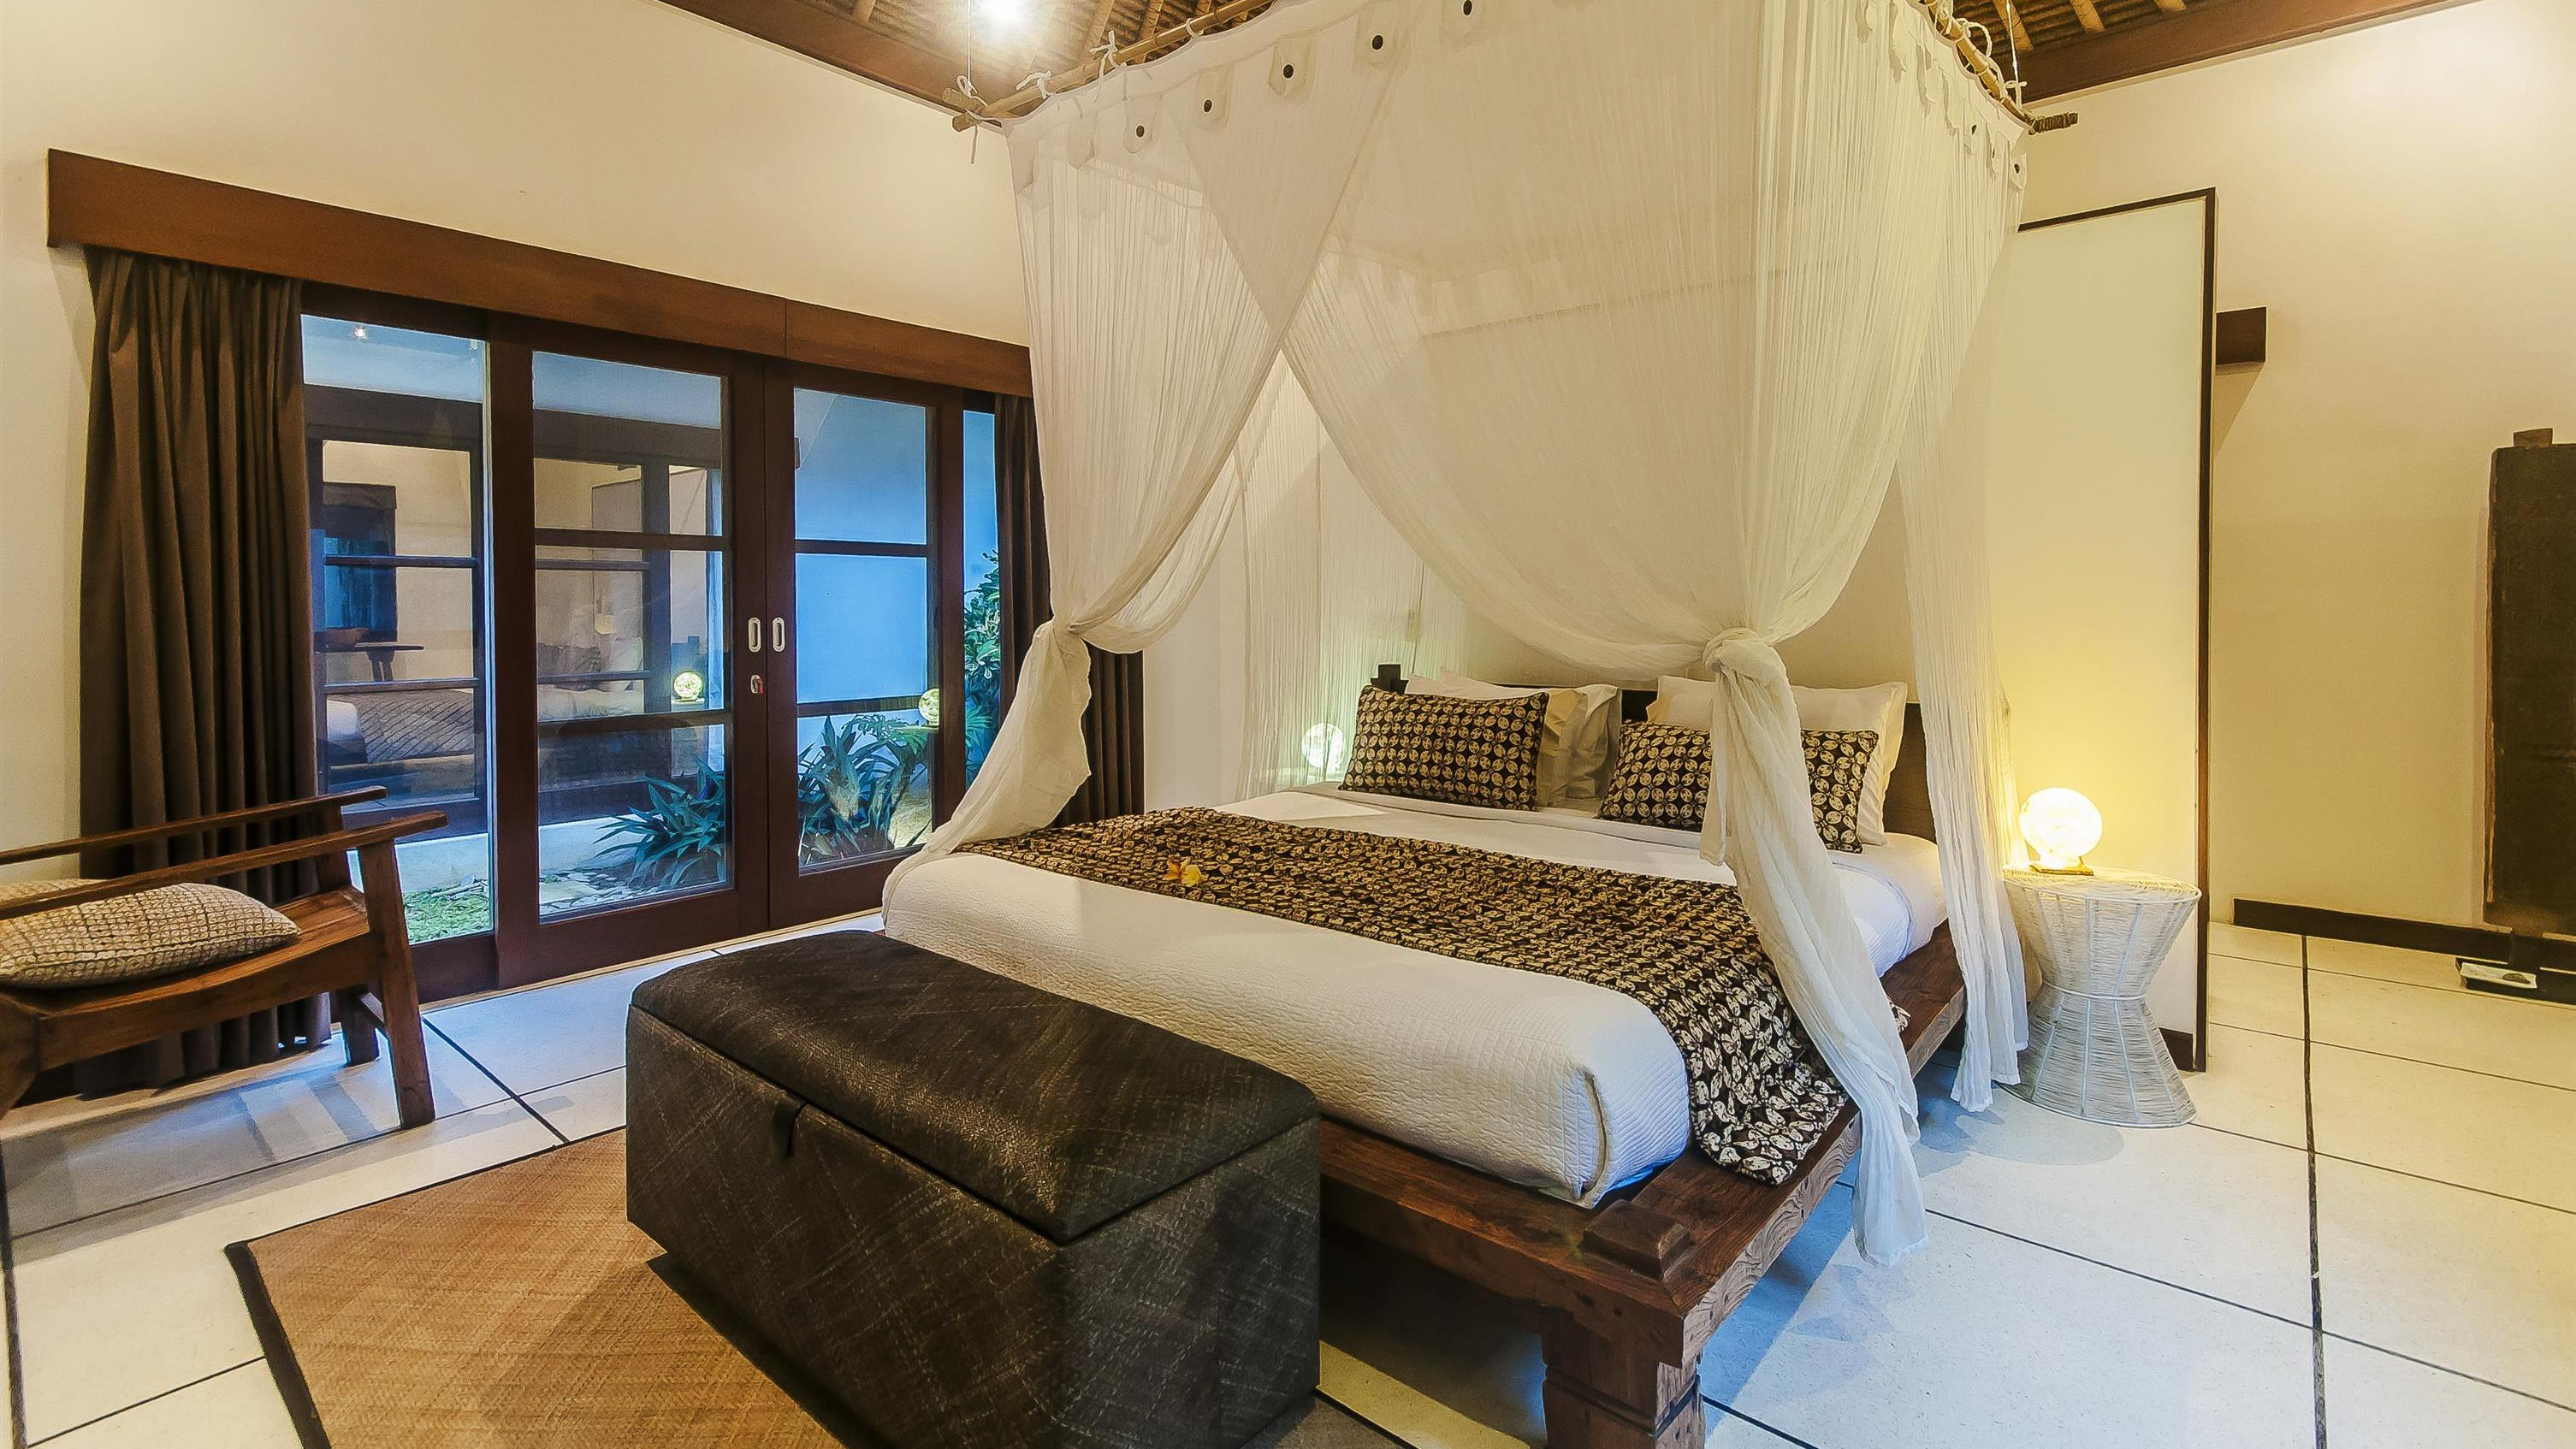 Bedroom with Mirror - Villa Damai - Seminyak, Bali